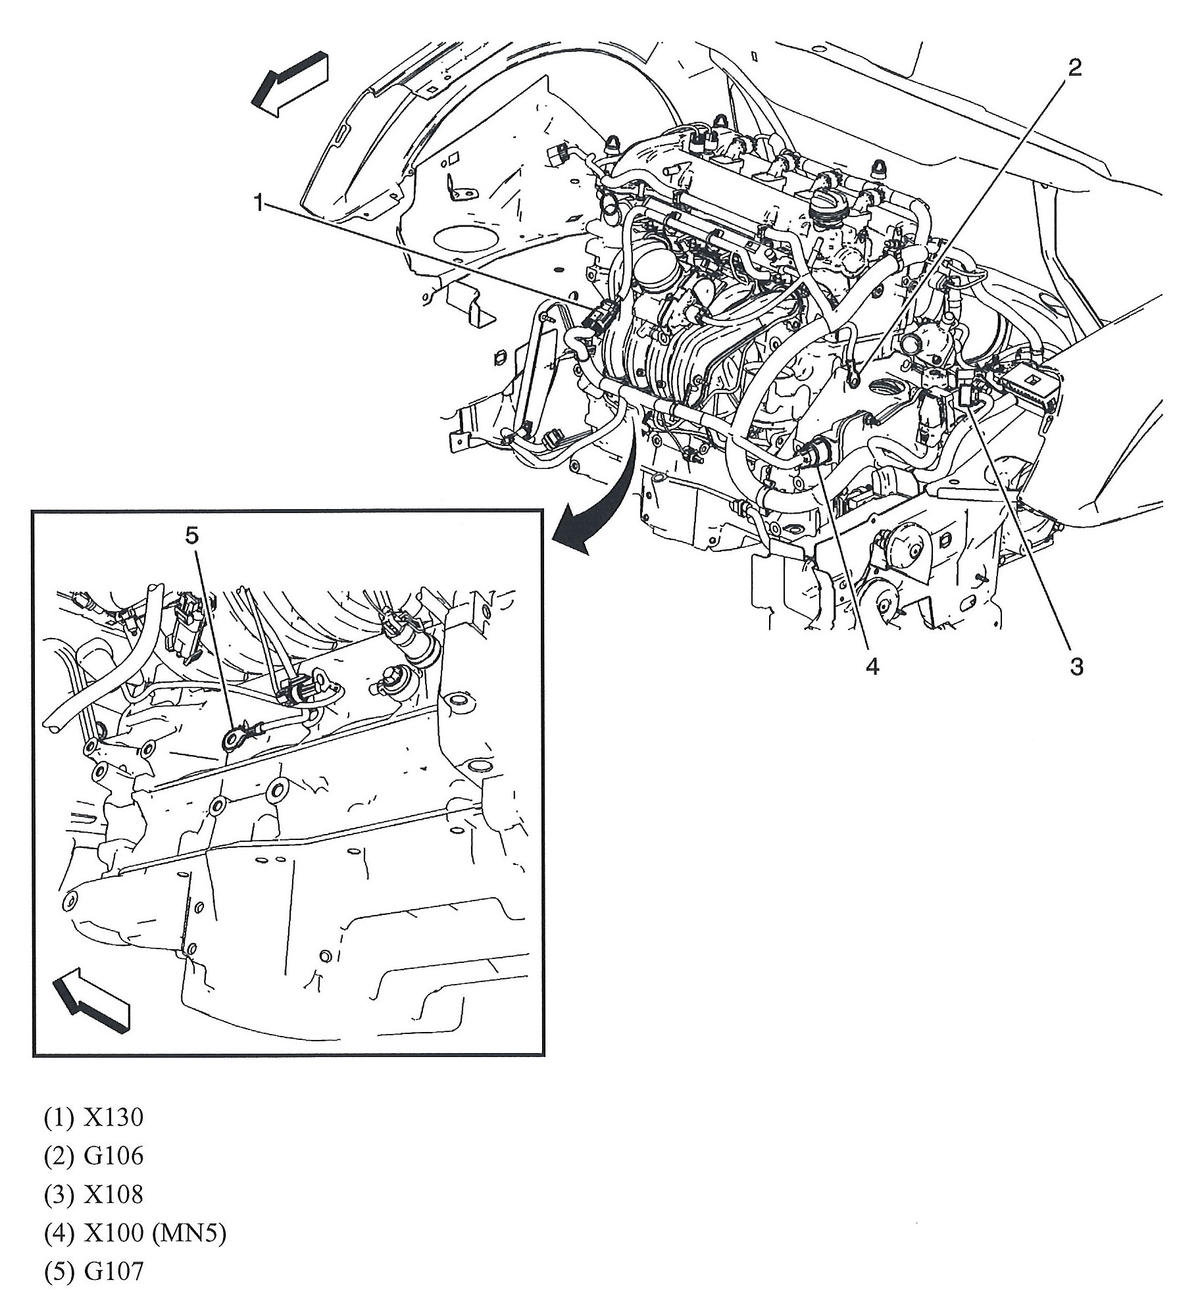 hight resolution of 2012 chevy 2 4 engine diagram wiring diagram val 2010 chevy equinox 2 4 engine diagram